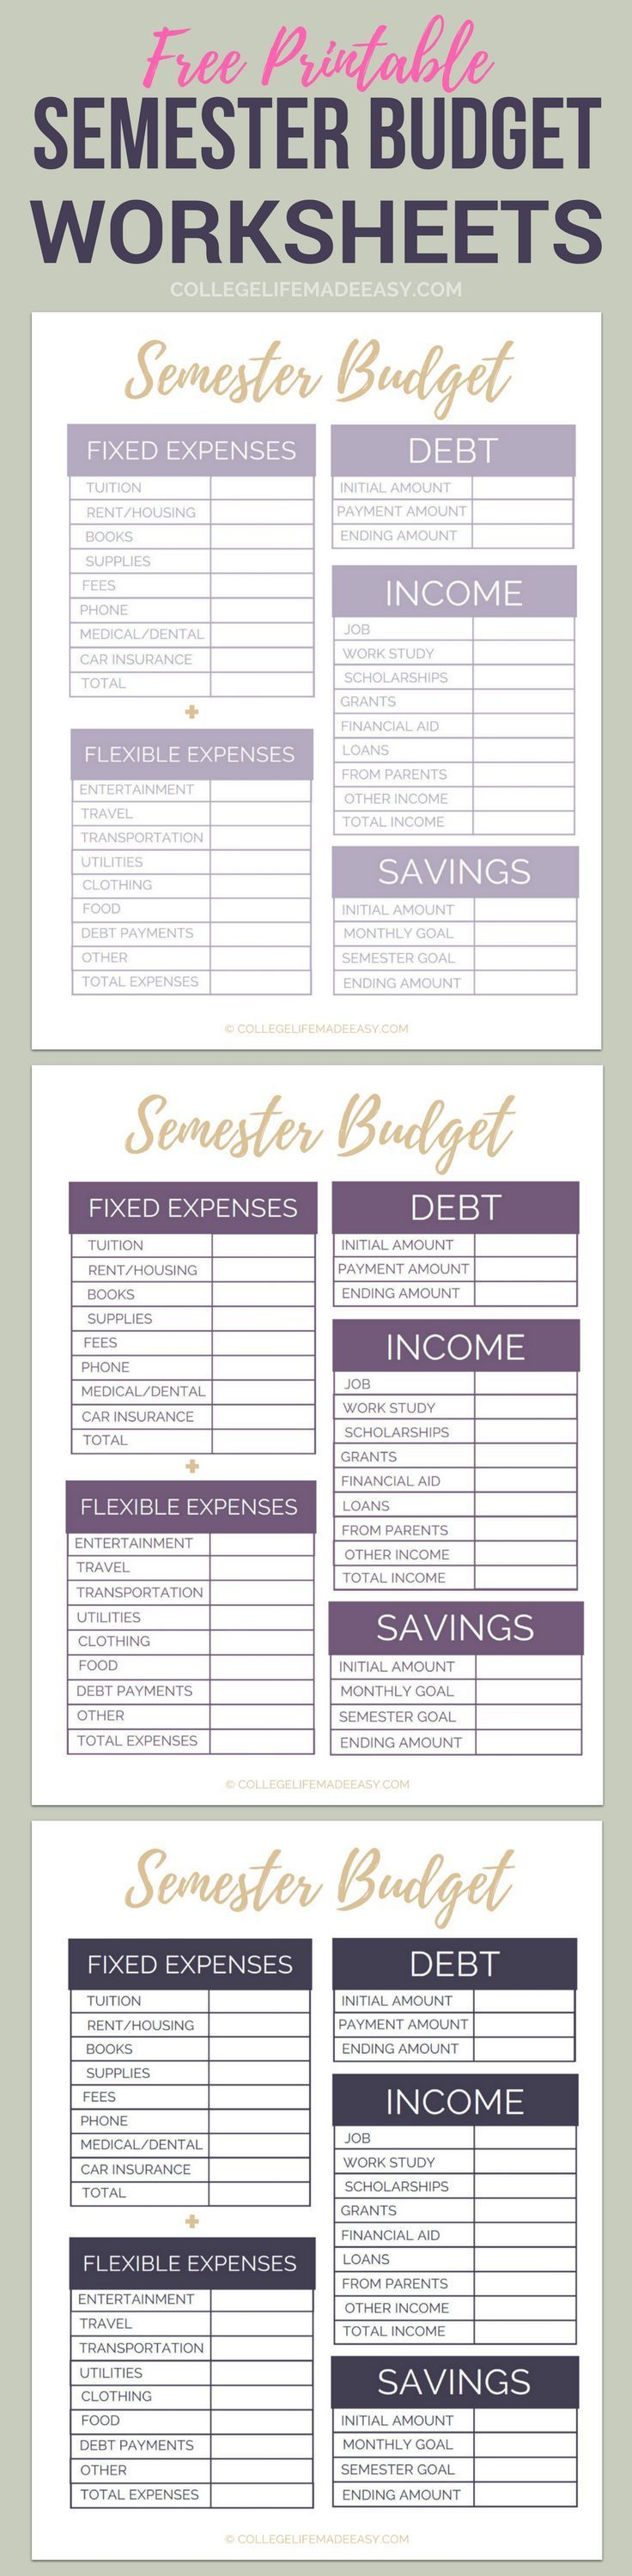 Worksheets Printable Fafsa Worksheet free printable college semester budget worksheets organize your finances in minutes and college